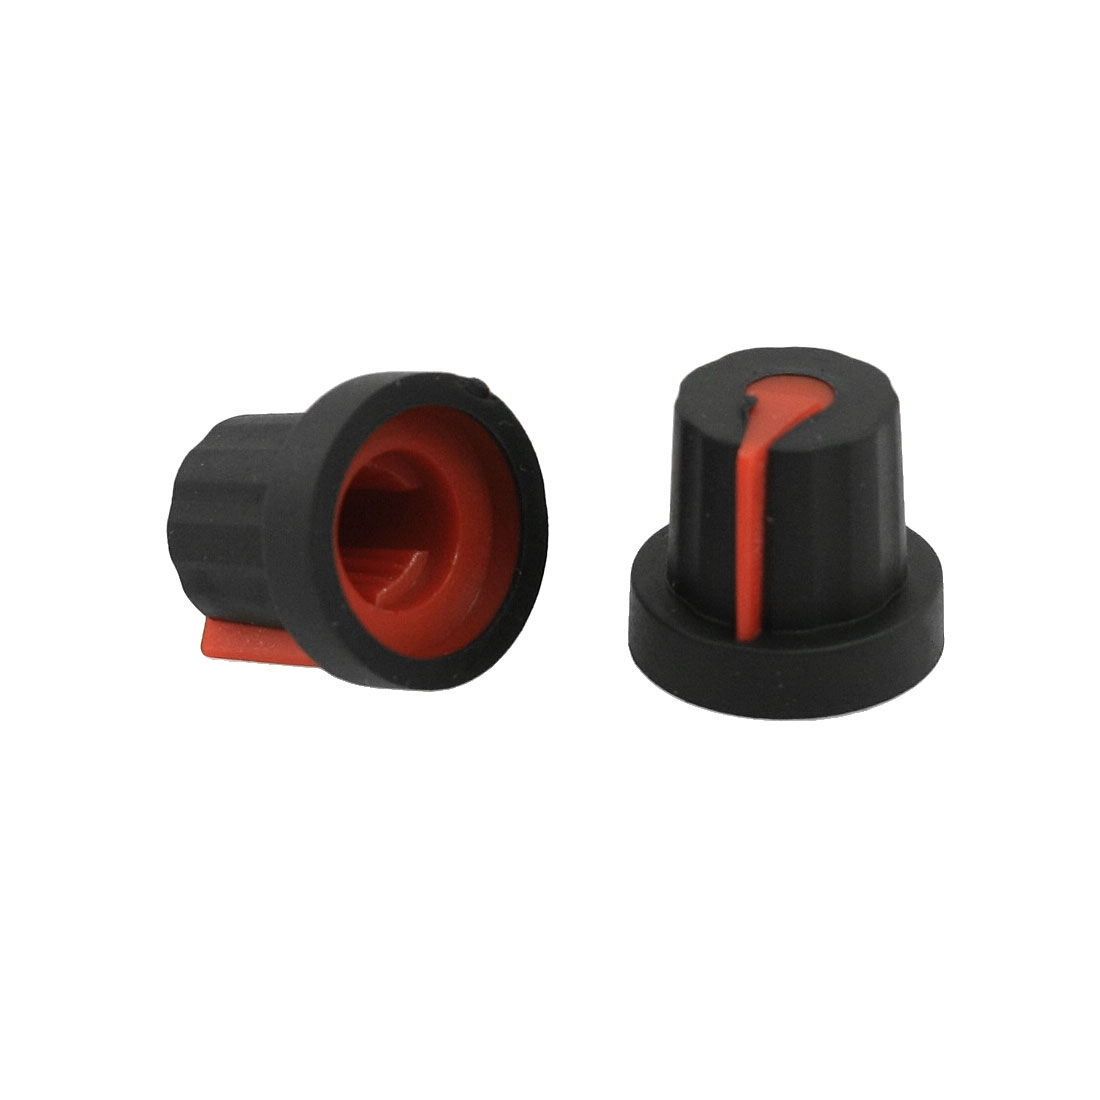 5 Pcs Rubber Coated Plastic Knurled Grip Potentiometer Knobs Black Red